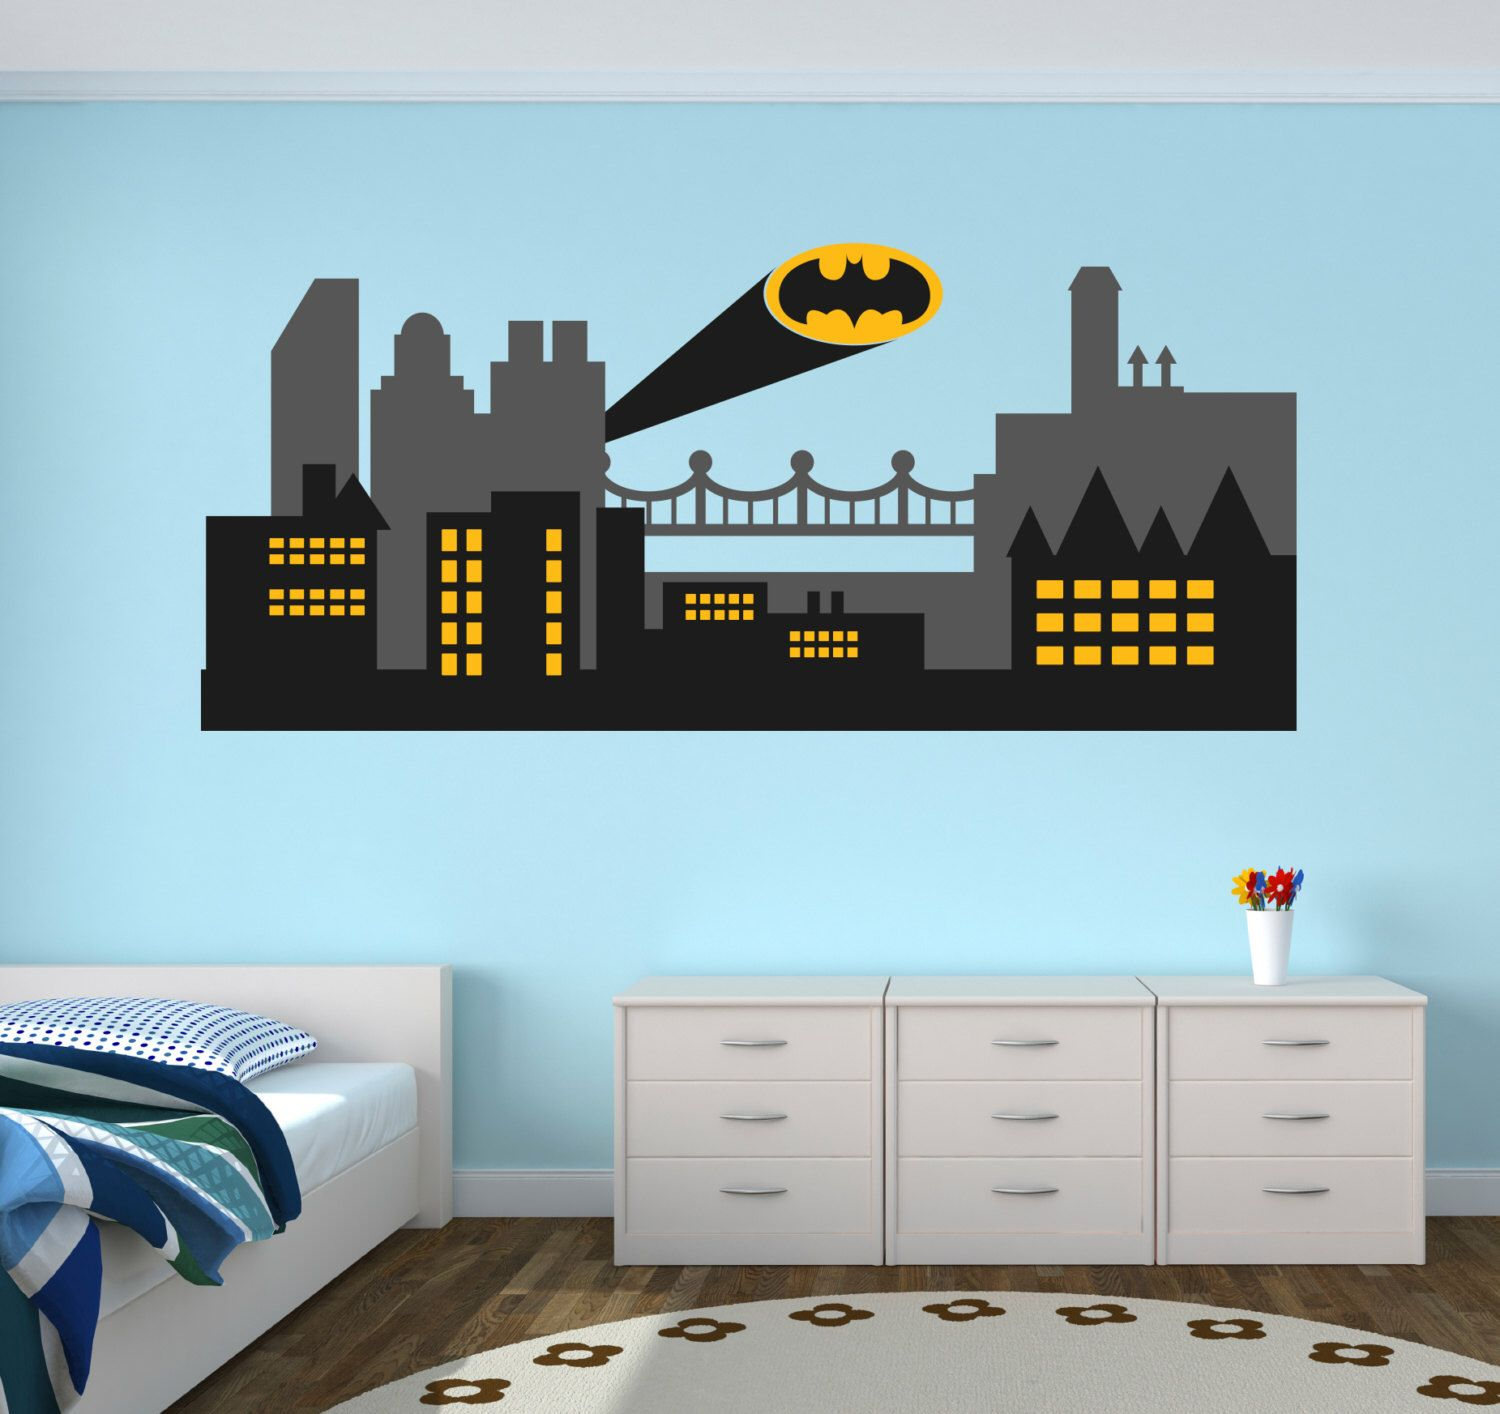 Gothic City Wall Decal Batman Gothic City Skyline Wall Art - Superhero wall decals for kids roomssuperhero wall decal etsy